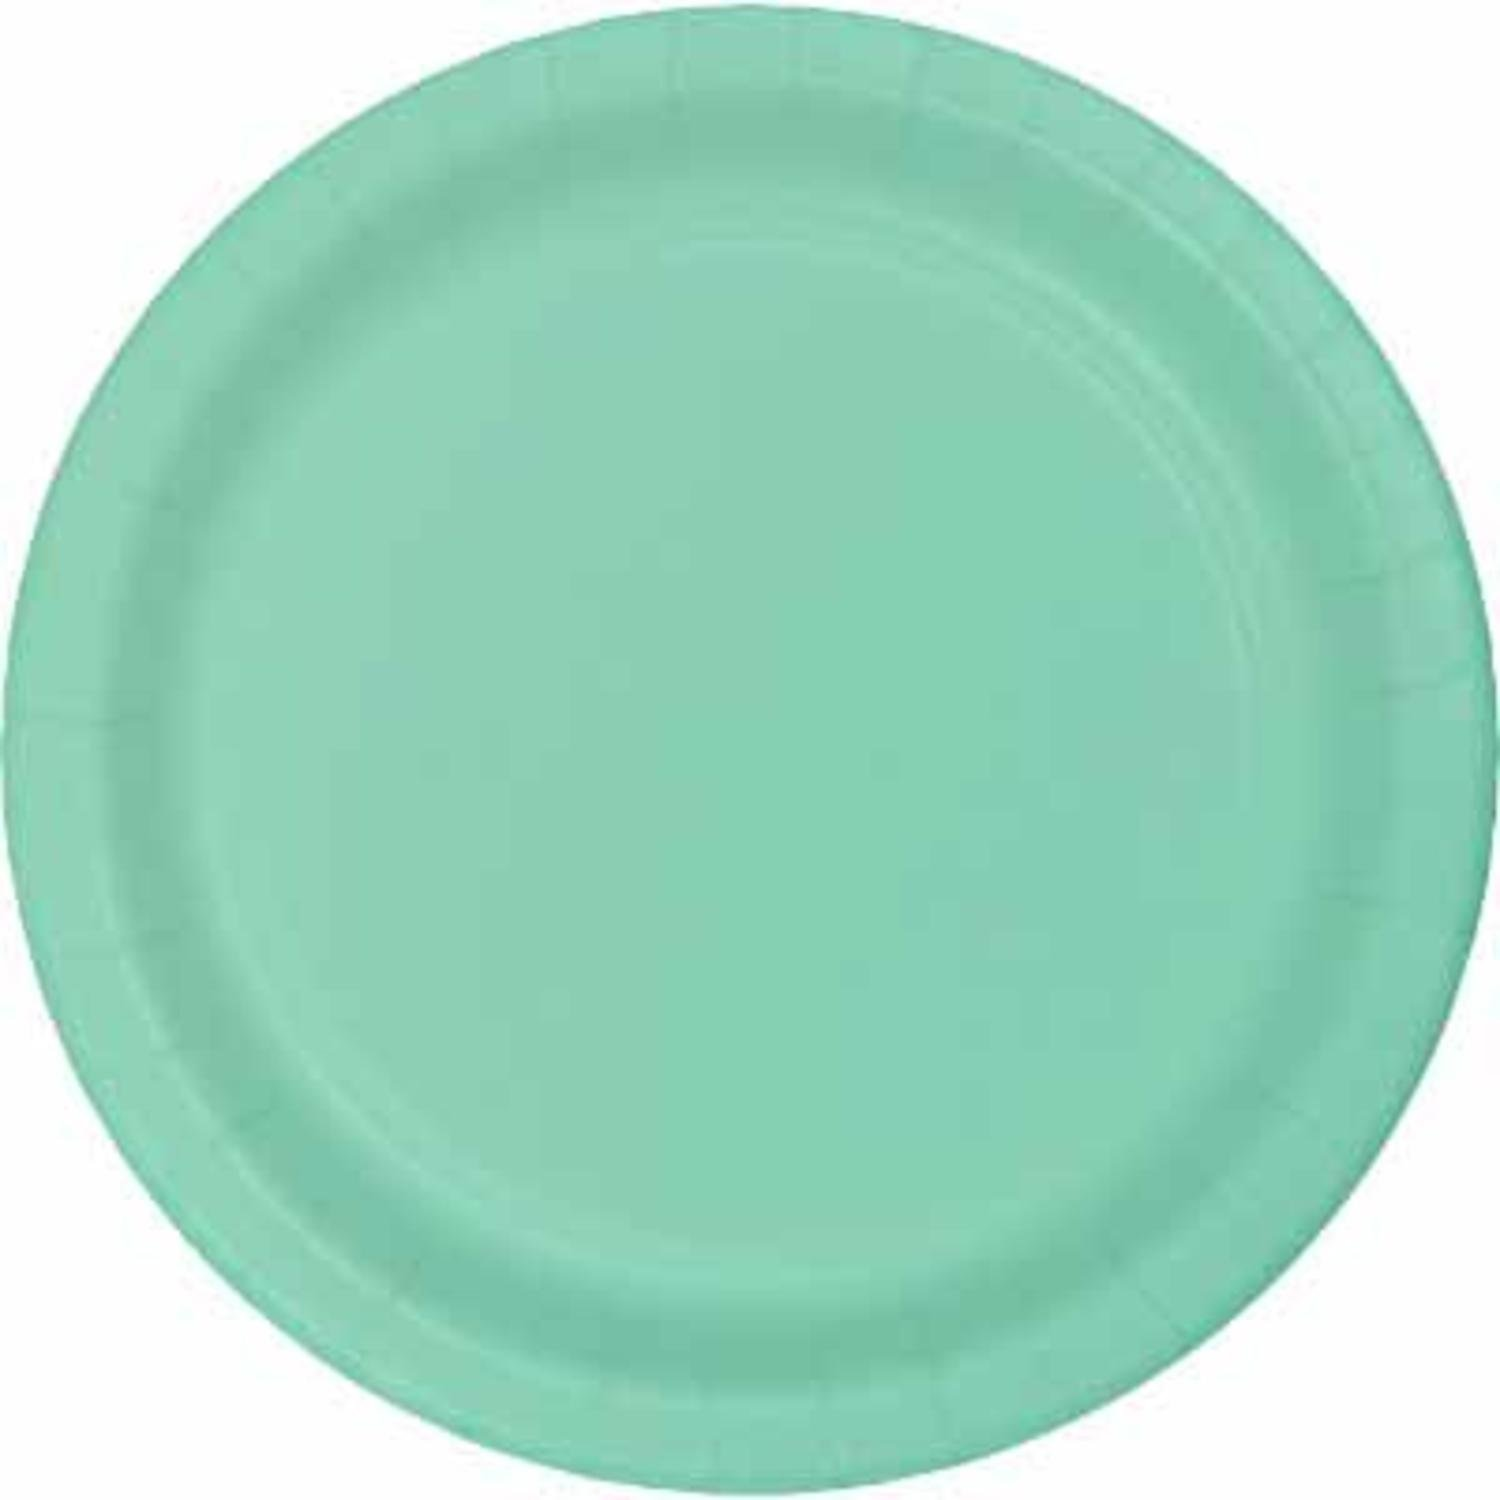 Club Pack of 240 Fresh Mint Green Premium Durable Paper Banquet Plate 10'' by Party Central